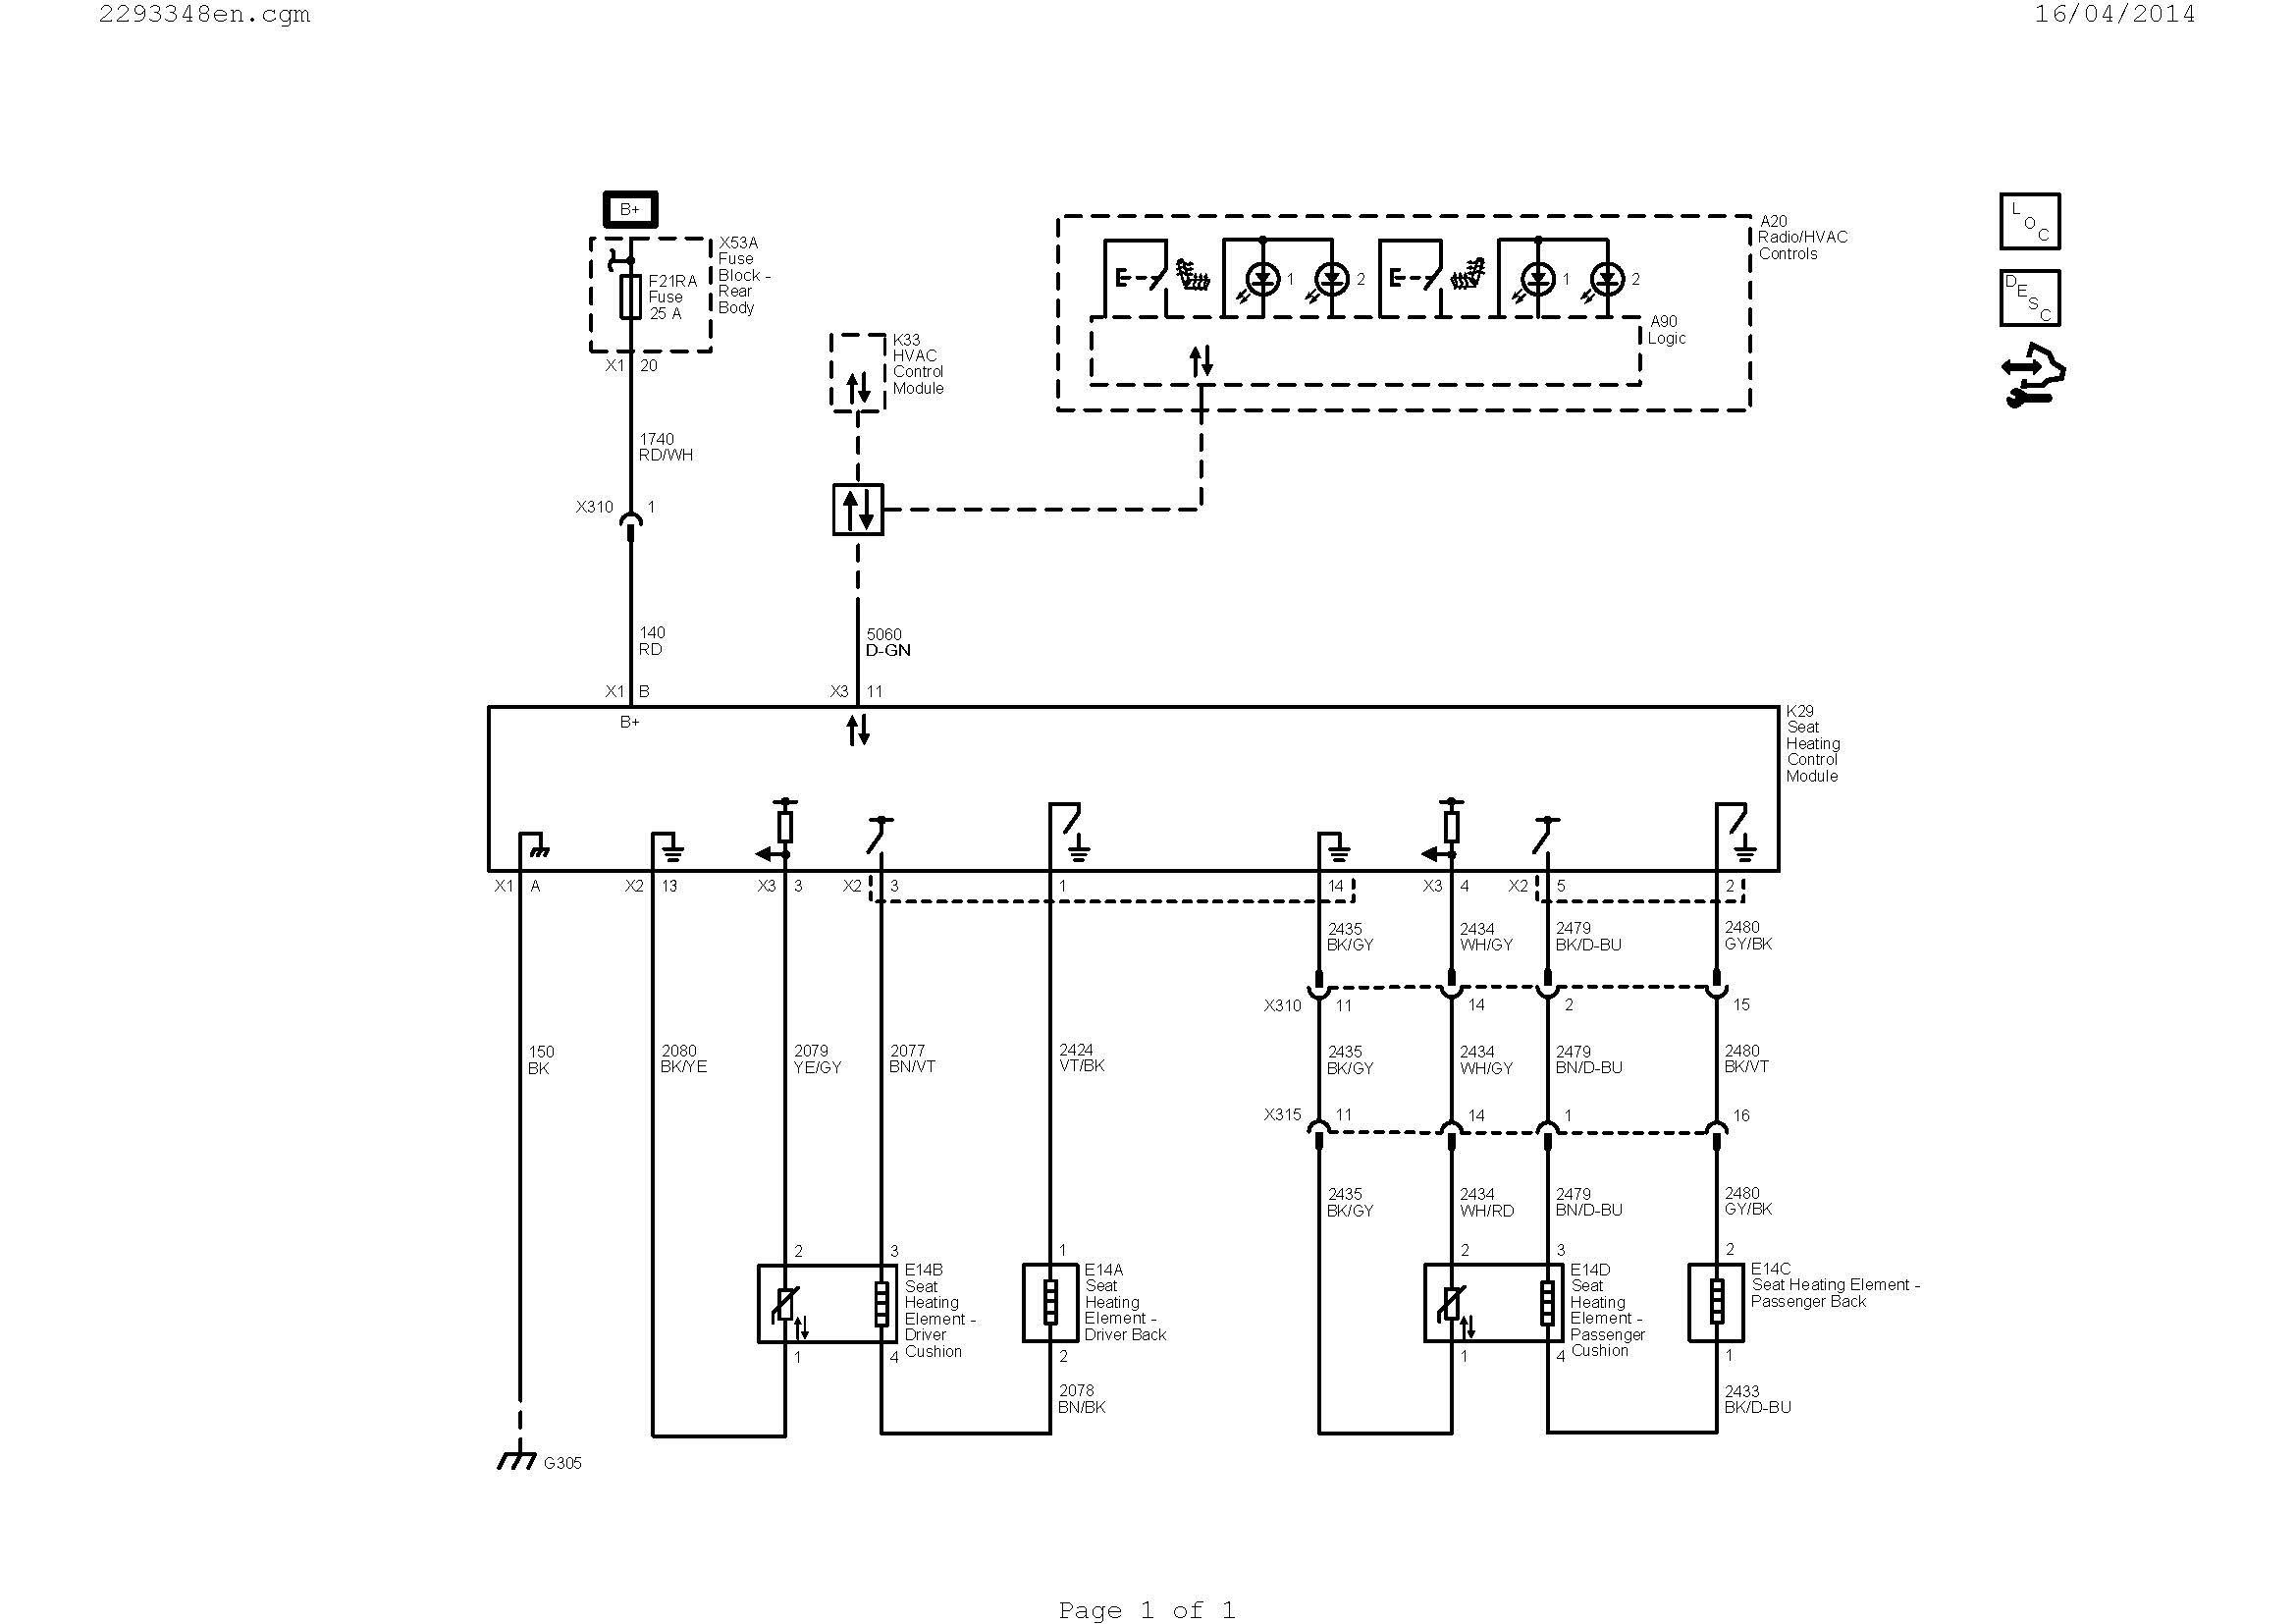 radio wiring diagram Collection-Wiring Diagram Schematic New Wiring Diagram Guitar Fresh Hvac Diagram Best Hvac Diagram 0d 7-e